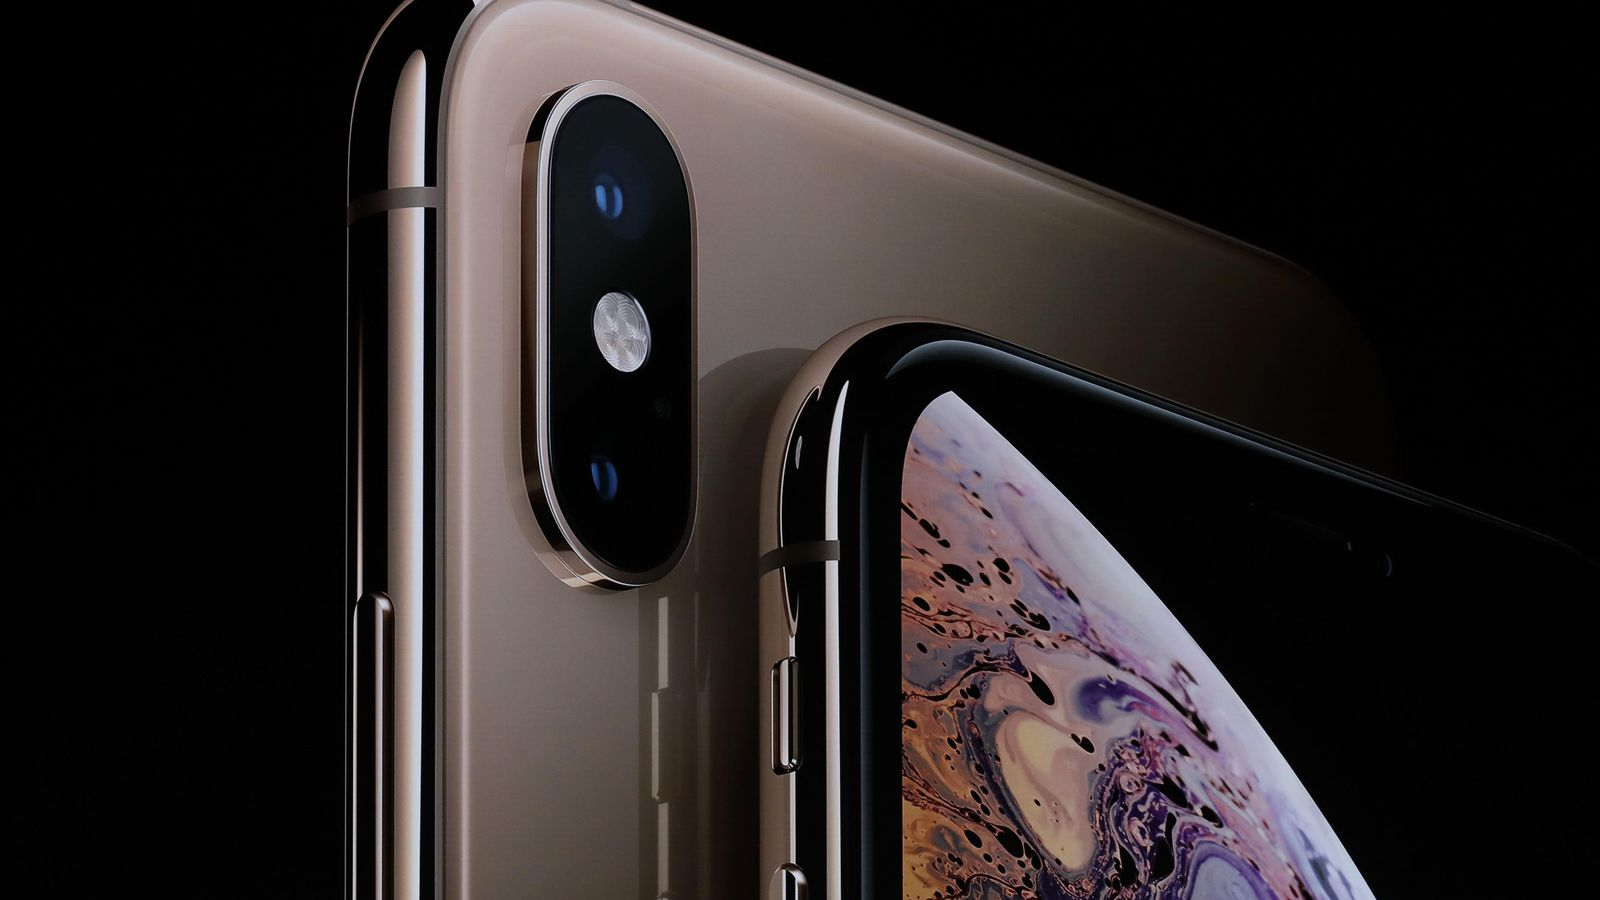 Apple iPhone XR, XS and XS max specifications